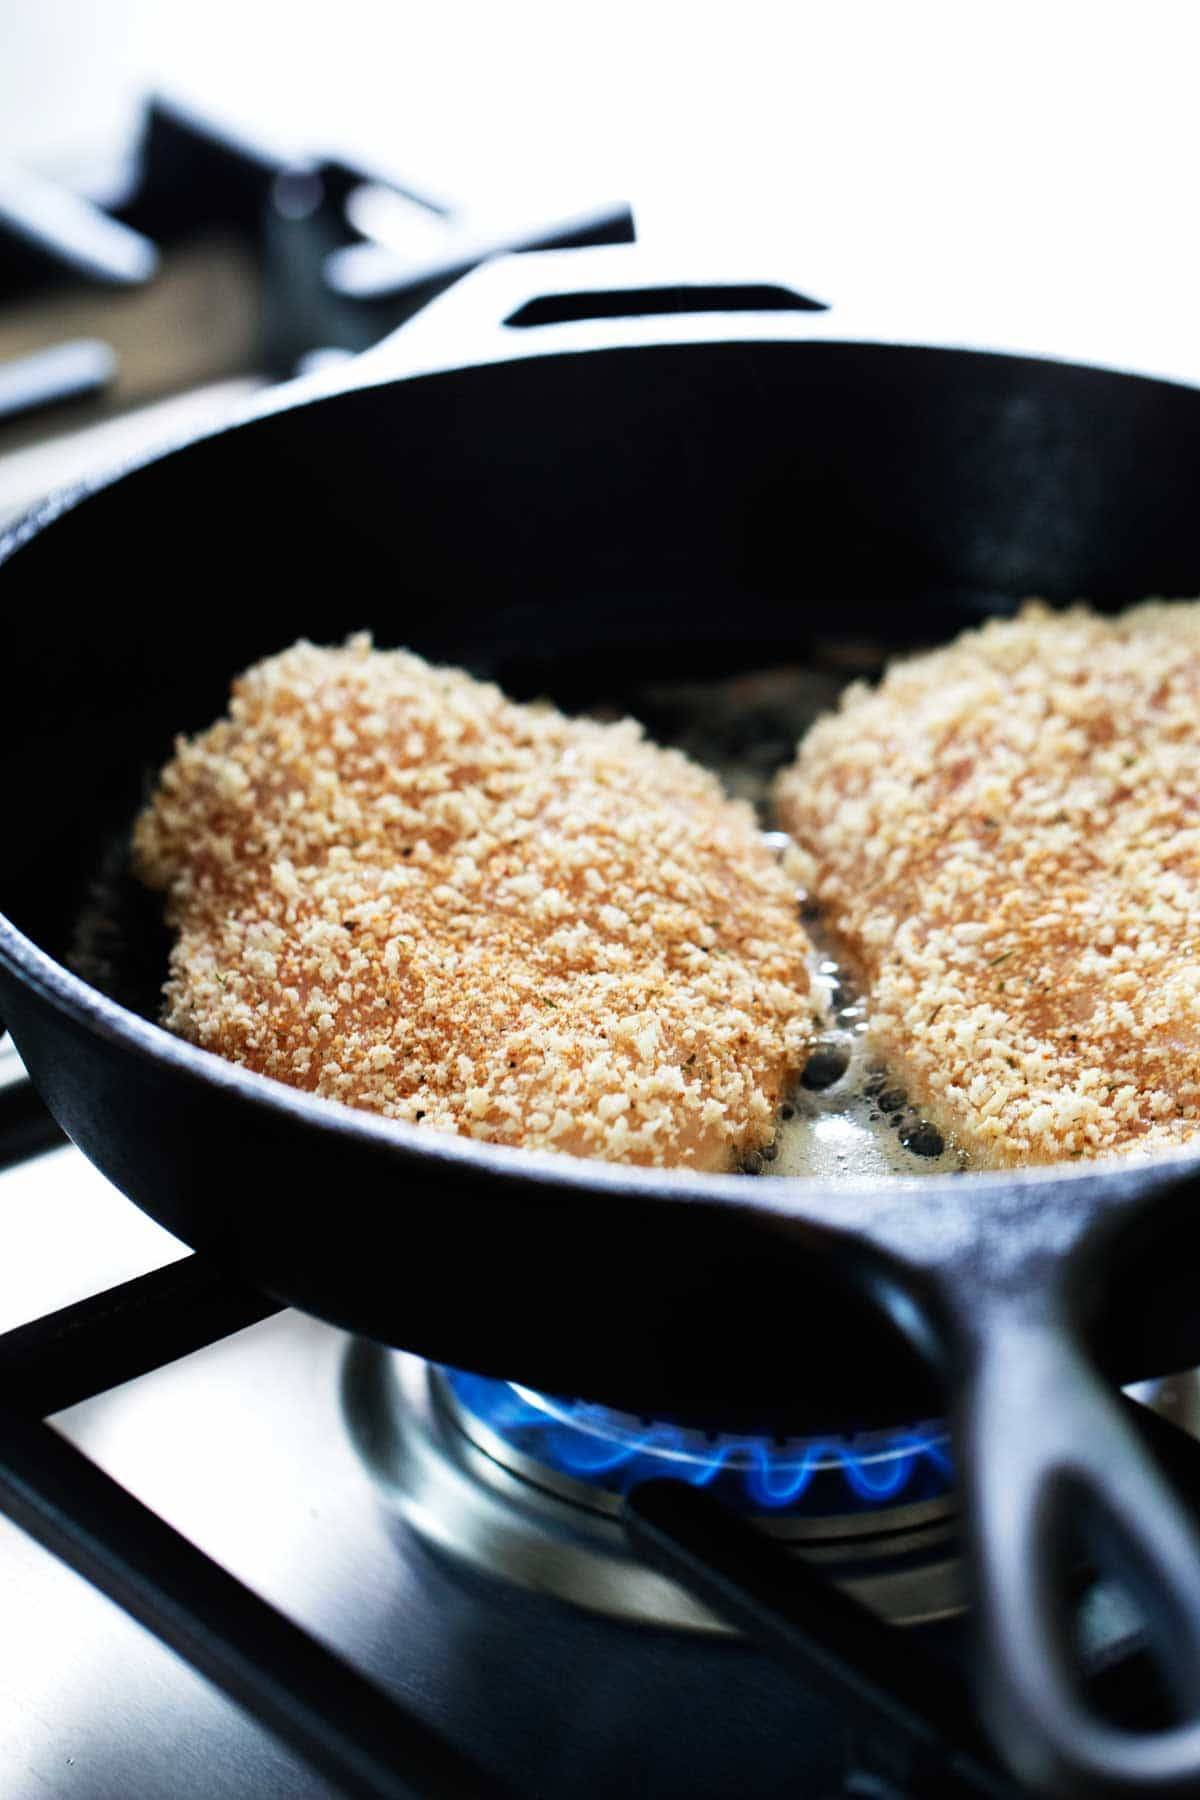 Breaded chicken on a skillet.